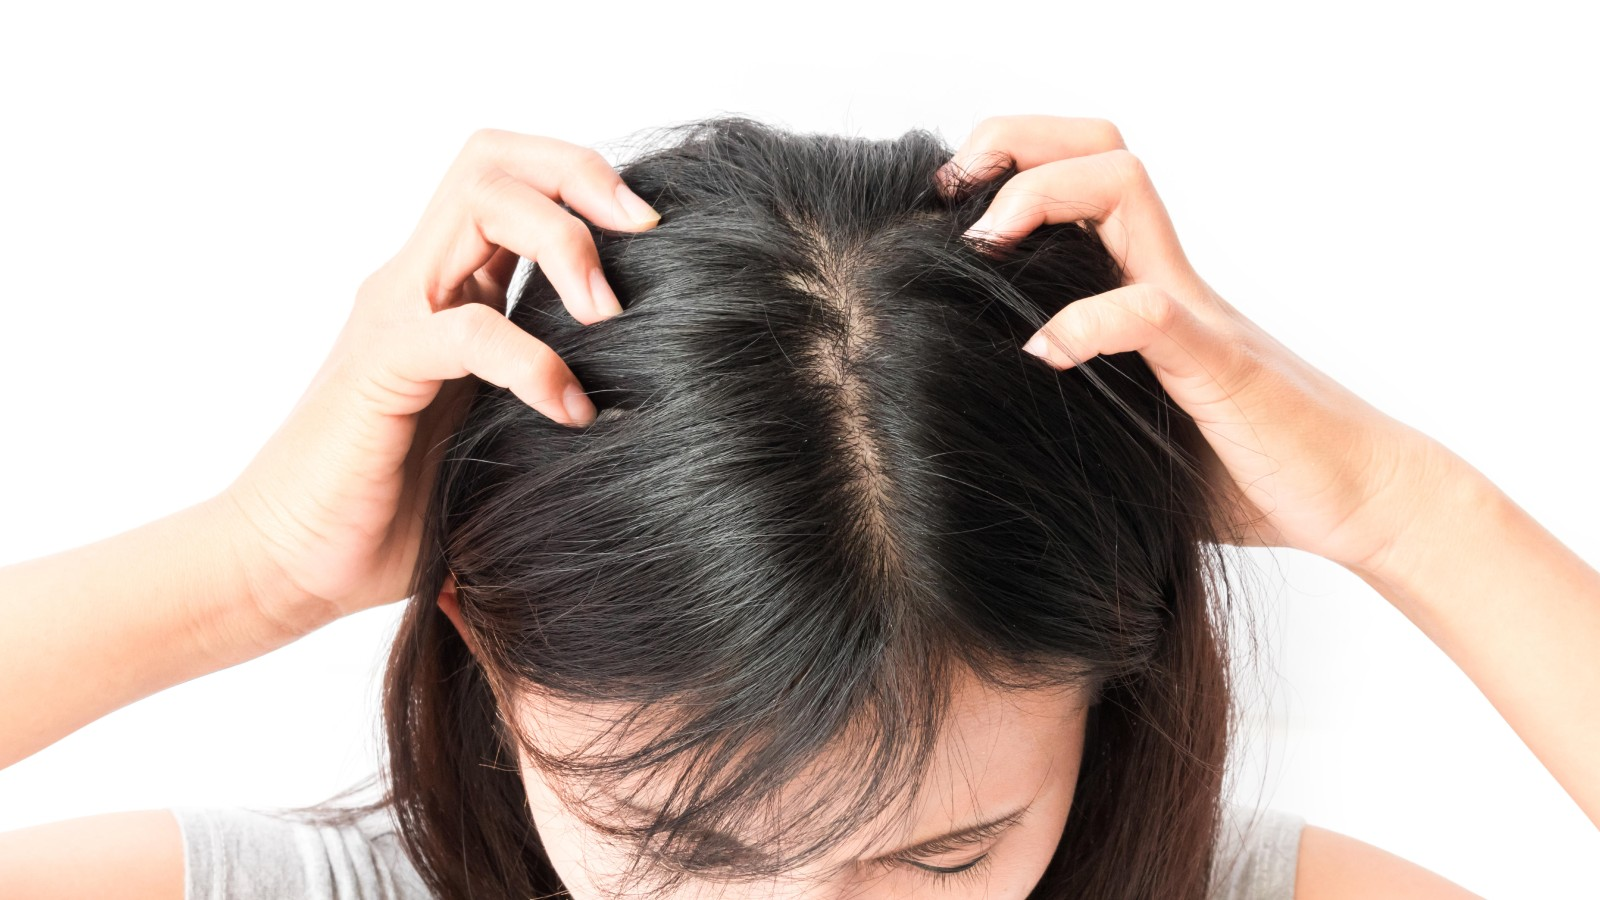 Do you need a scalp facial? 3 steps to a cleaner head